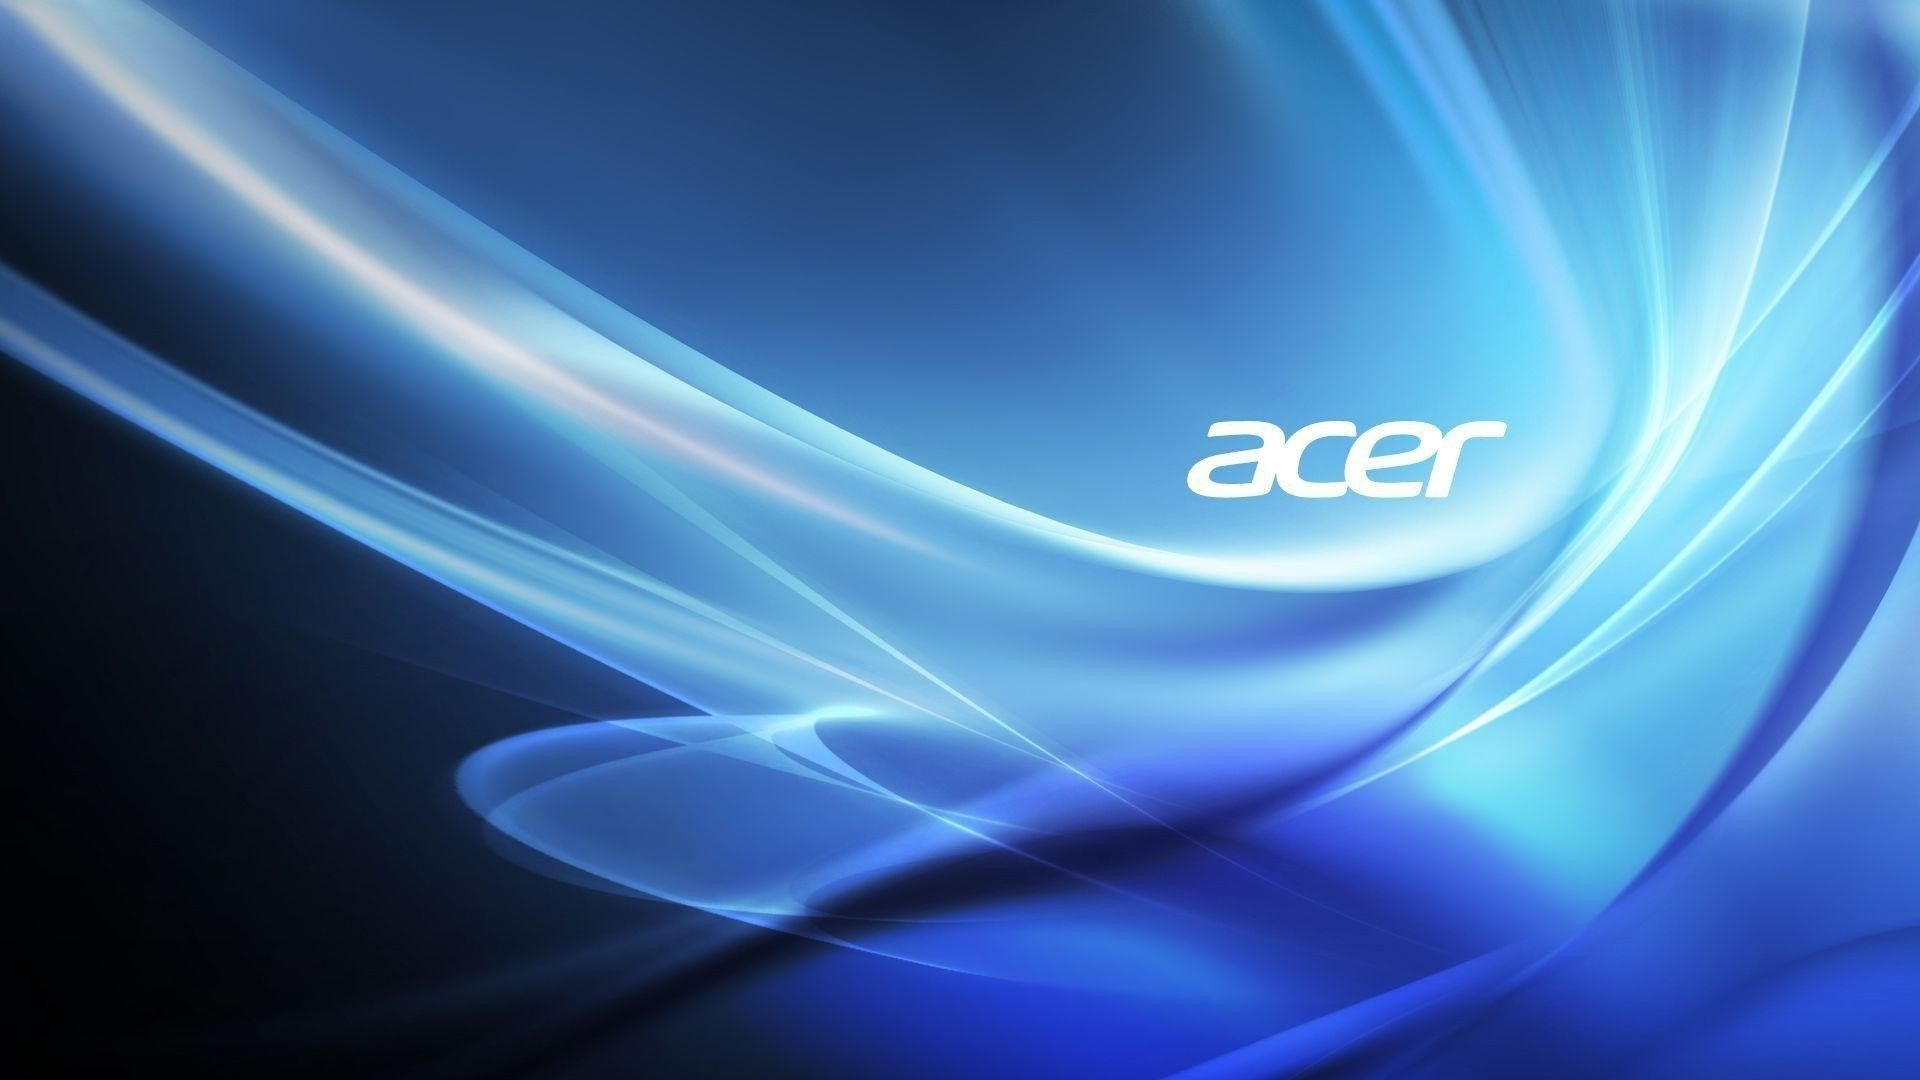 Download All Stock Roms For Acer Android Devices Fully Tested We Collect And Share All Acer Stock Roms Here If You Have Any A Acer Laptop Acer Acer Desktop